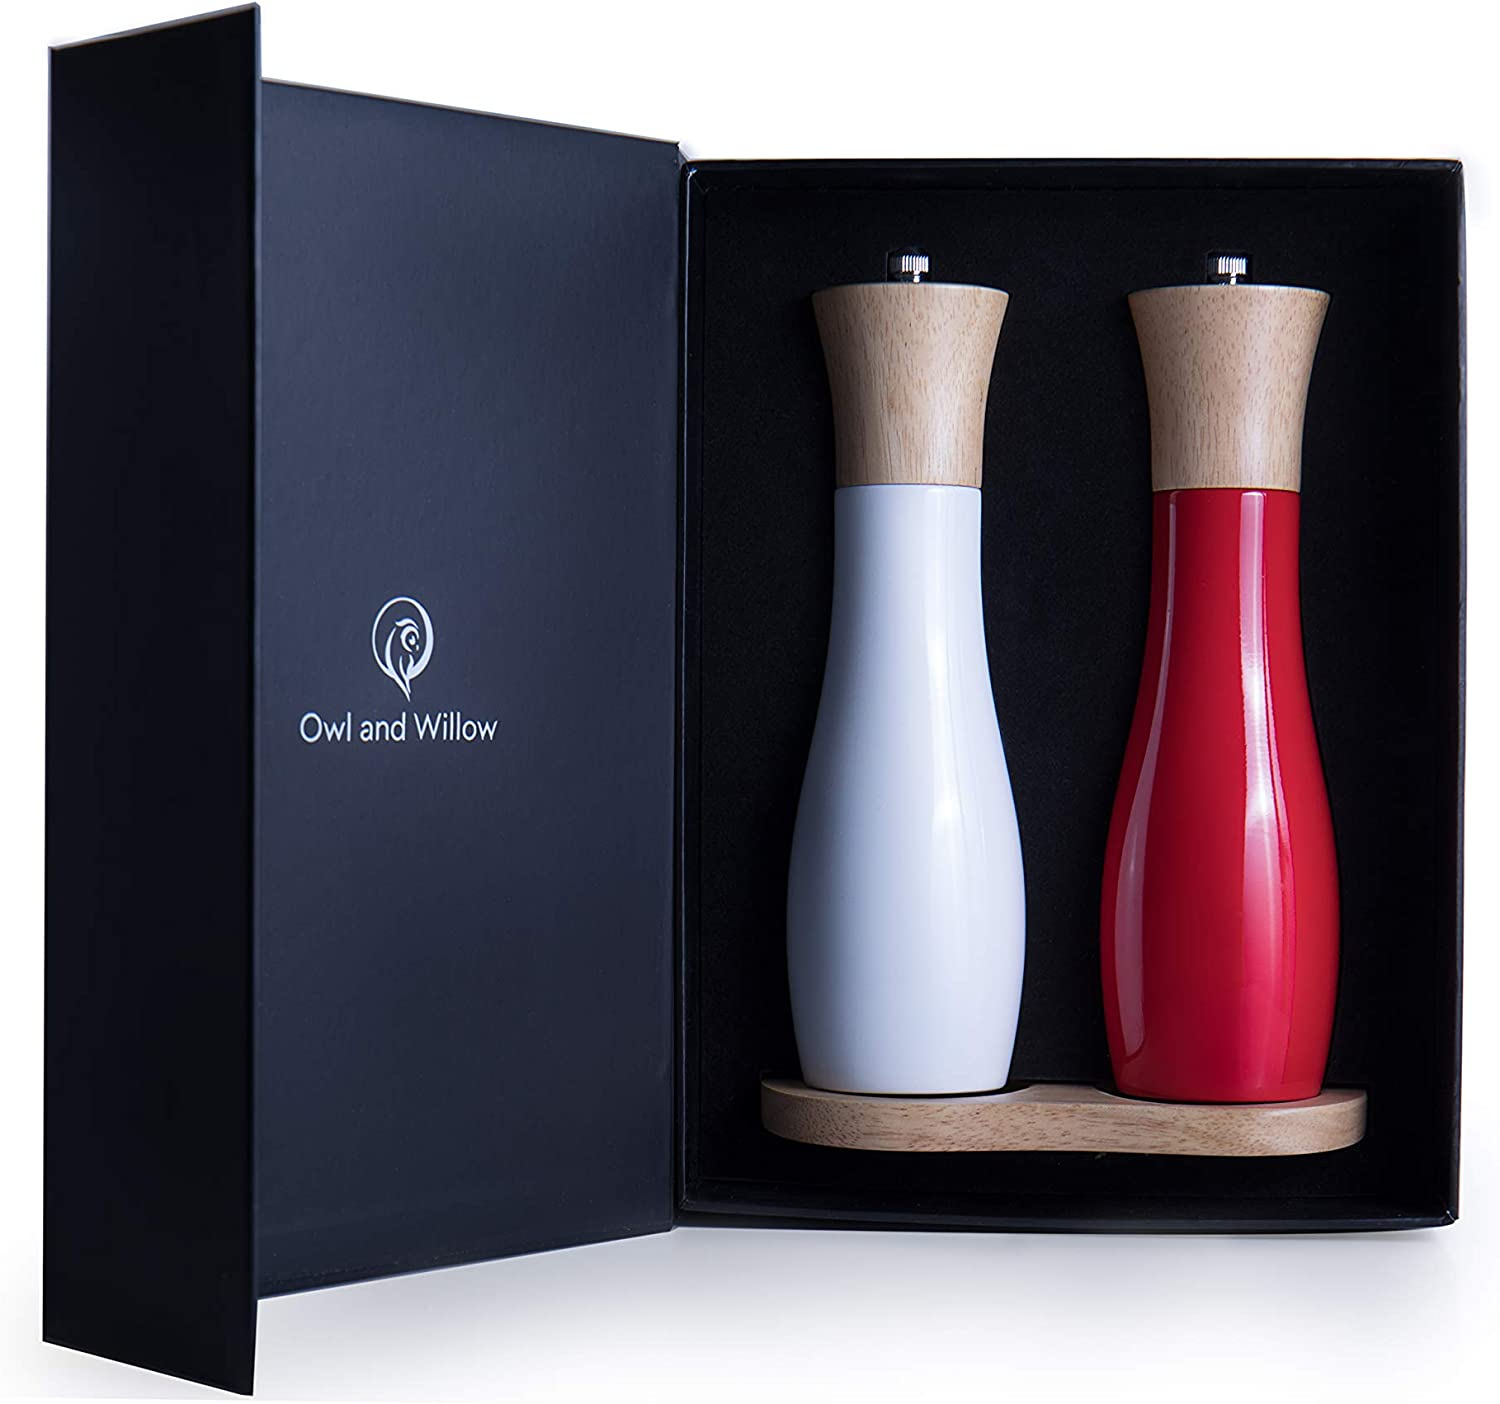 Red and White Precision Grinding Modern Kitchen Tools Owl and Willow Wooden Salt and Pepper Grinder Set Unique Red /& White Seasoning Mills With Stand Premium Gift Box For Coarse to Fine Salts